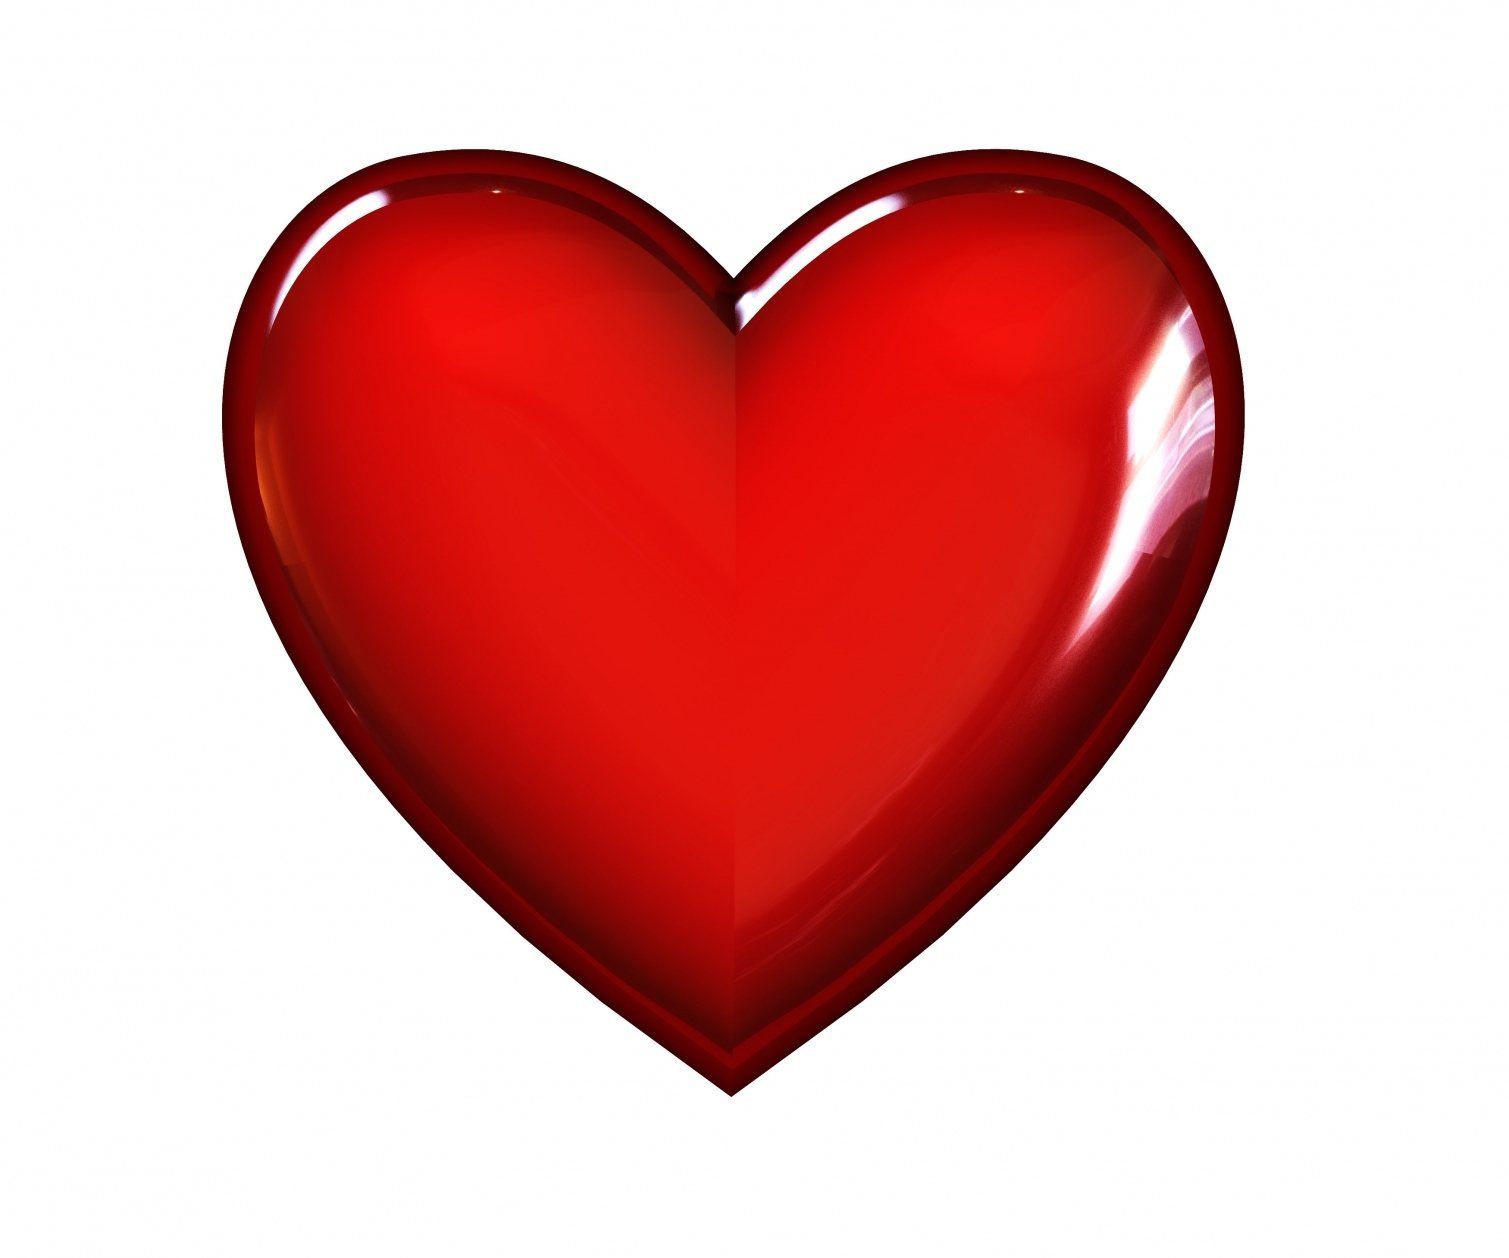 Free 3d Heart, Download Free Clip Art, Free Clip Art on Clipart Library.